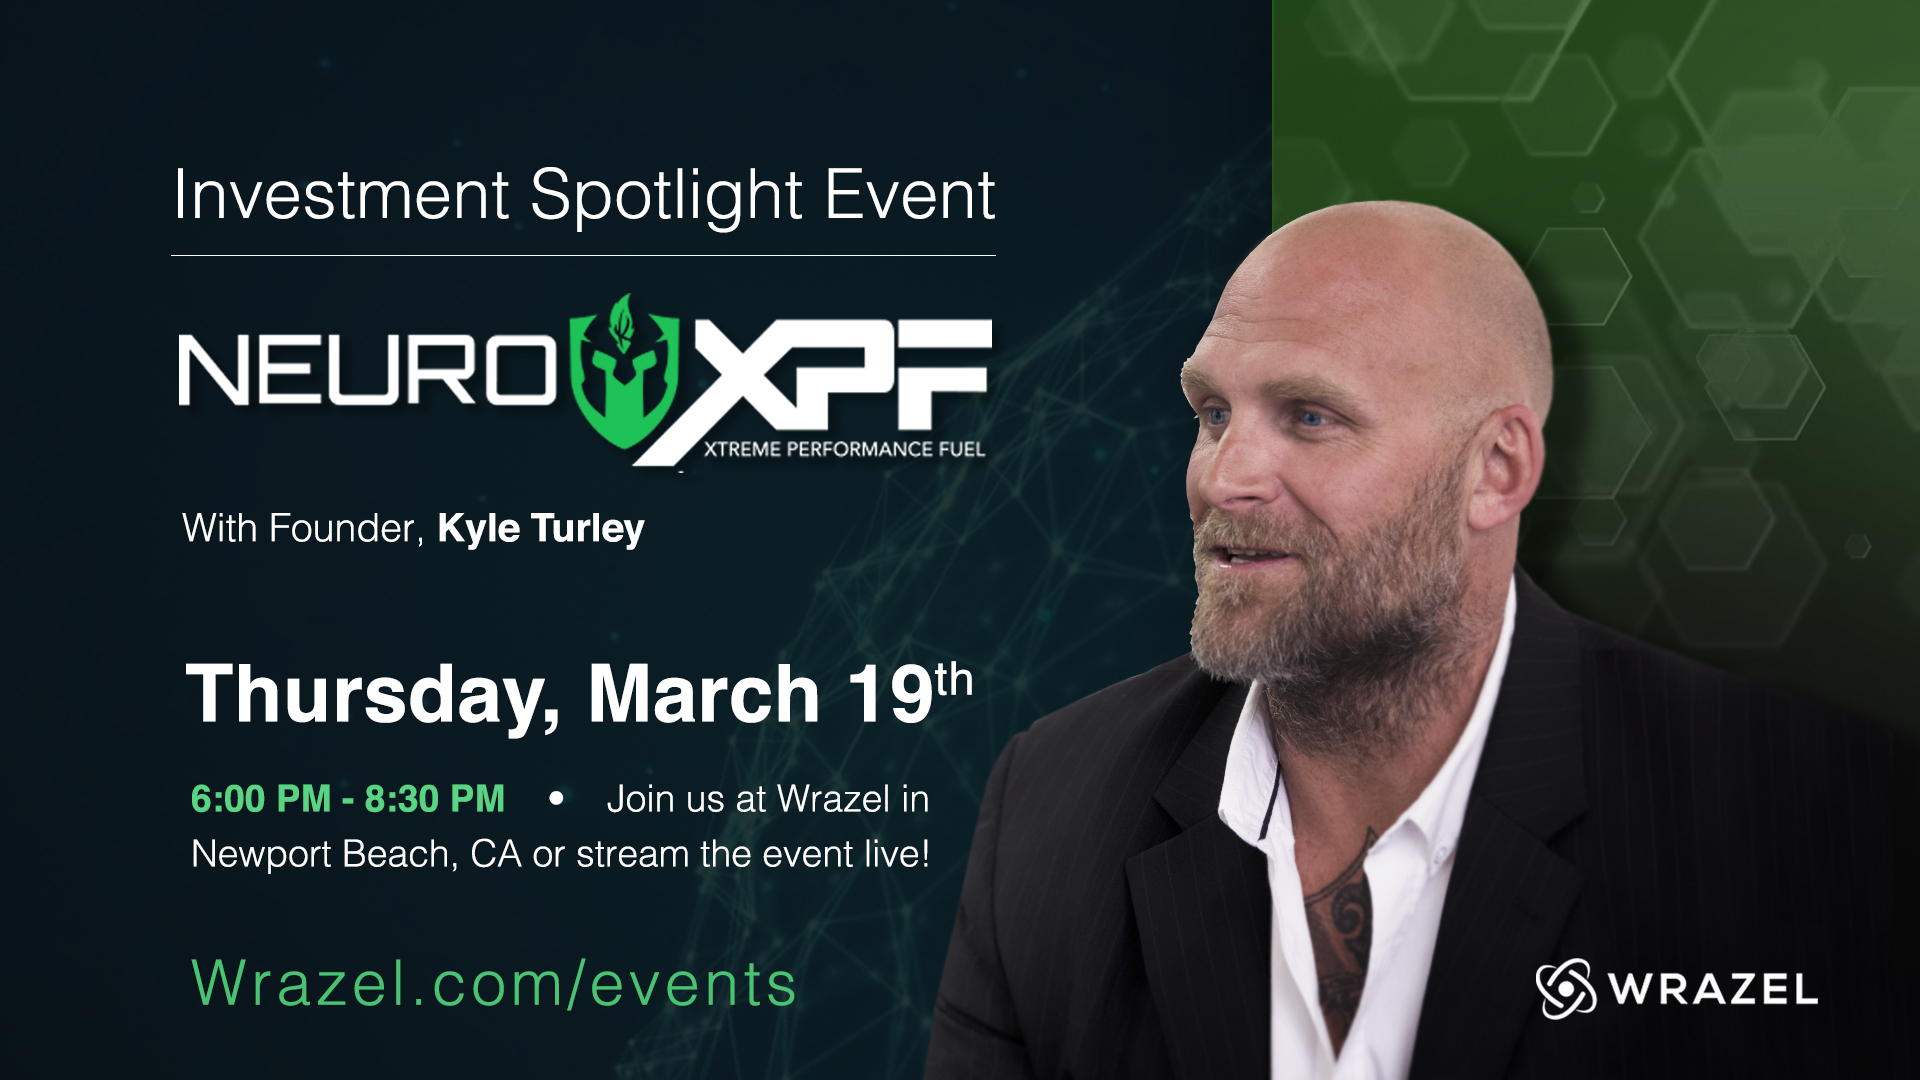 Wrazel Events: Investment Spotlight featuring Neuro XPF & Kyle Turley